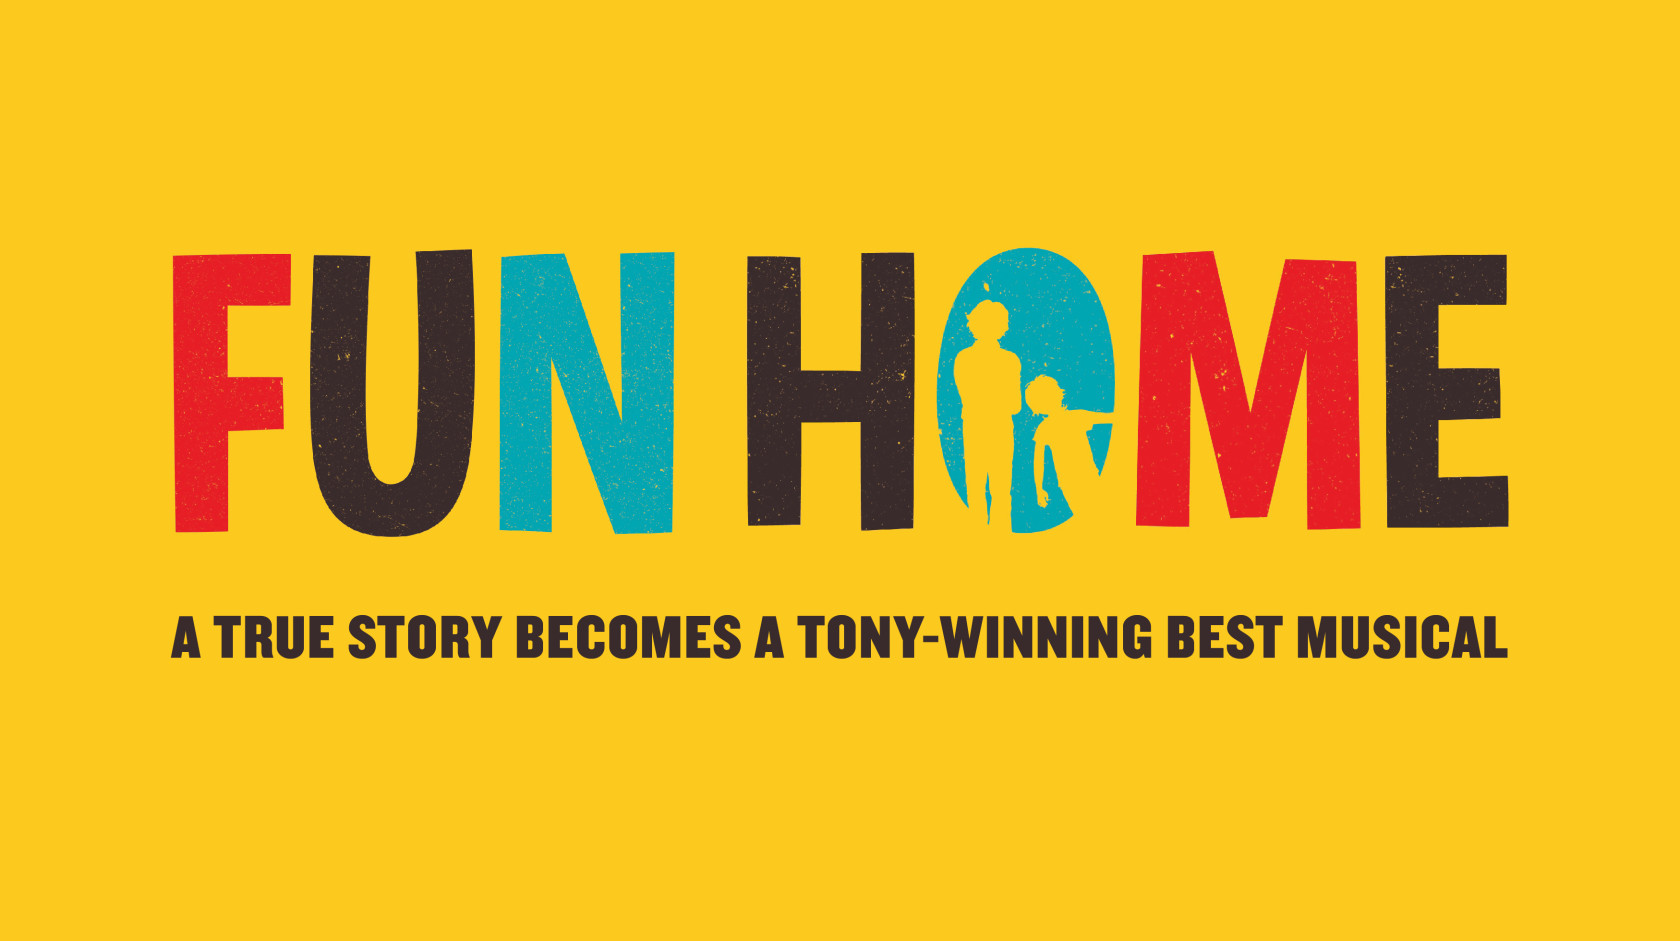 fun home In this groundbreaking, bestselling graphic memoir, alison bechdel charts her fraught relationship with her late father in her hands, personal history becomes a work of amazing subtlety and power, written with controlled force and enlivened with humor, rich literary allusion, and heartbreaking detail.